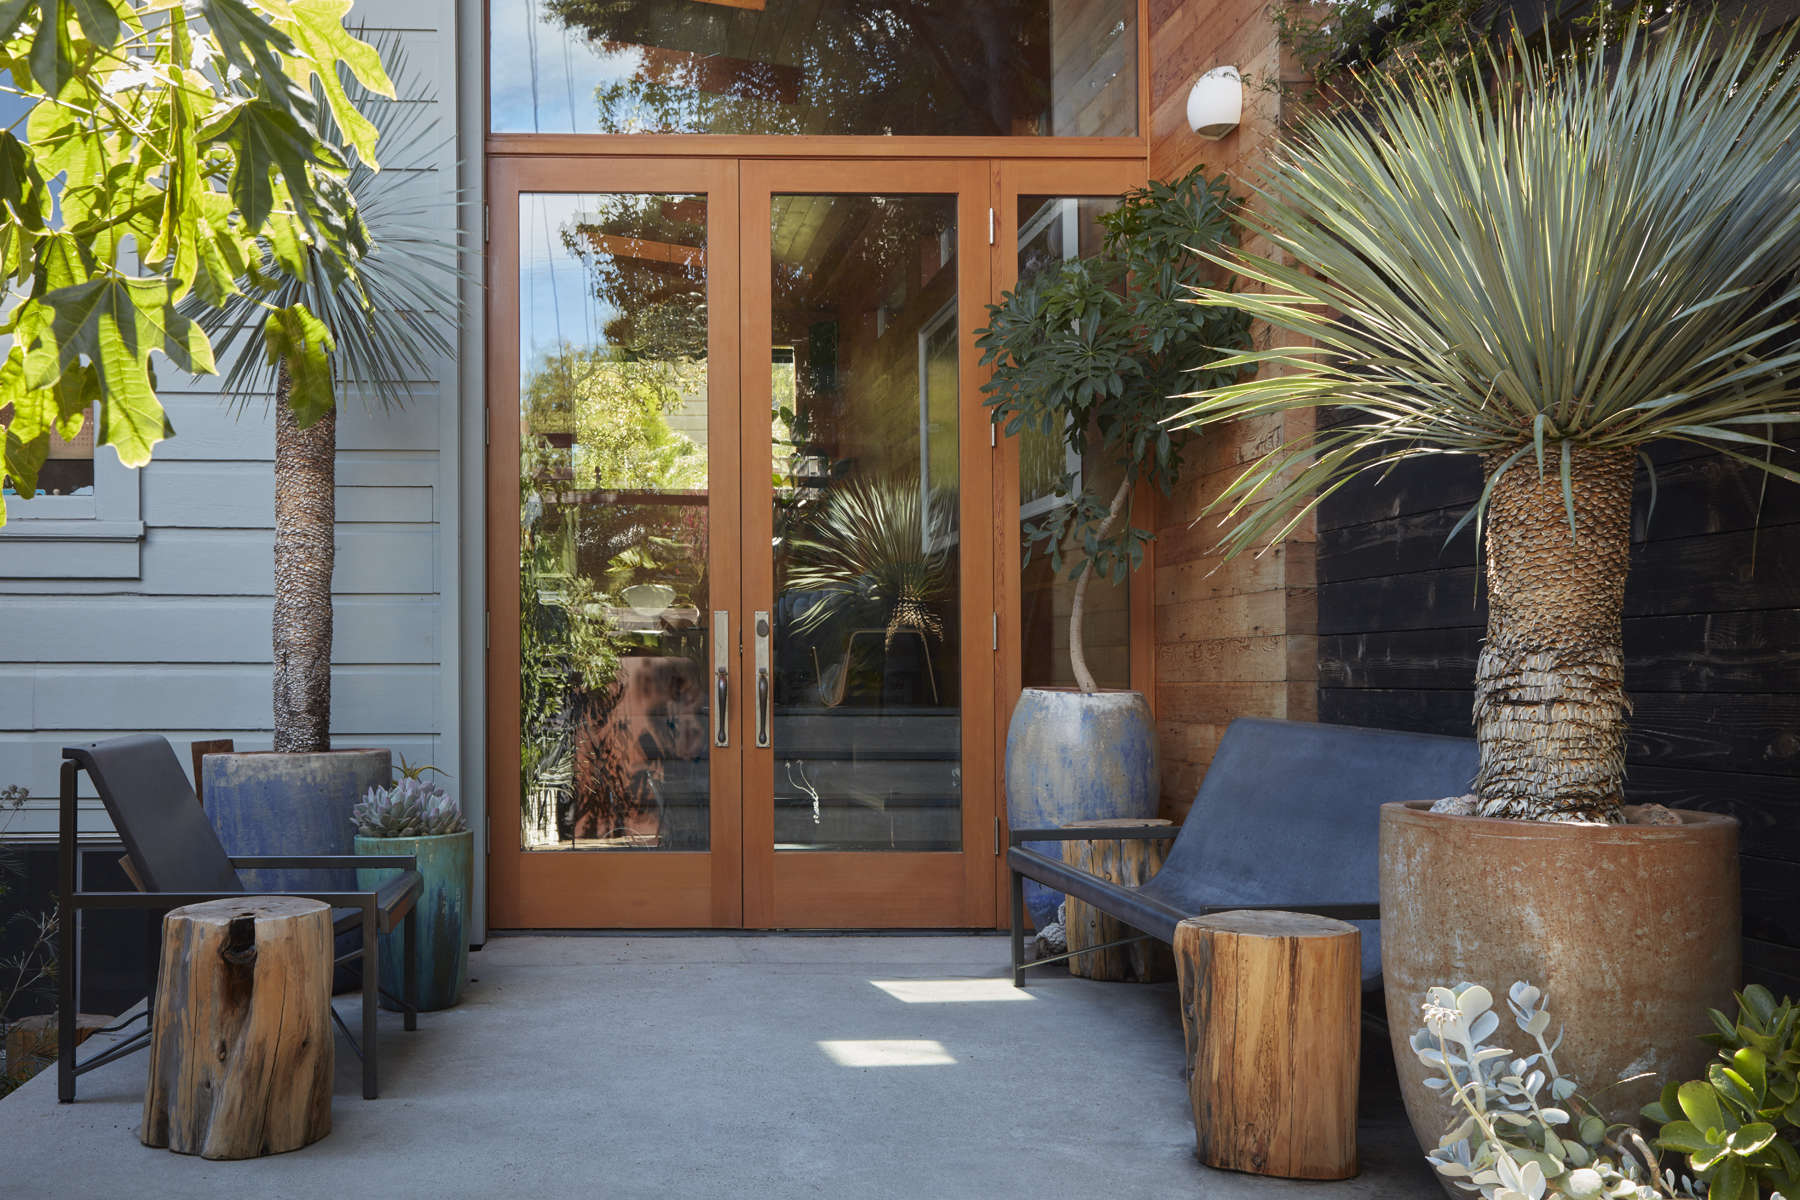 Daniel Nolan designed this entryway to a Mission District home. Photo by Caitlin Atkinson